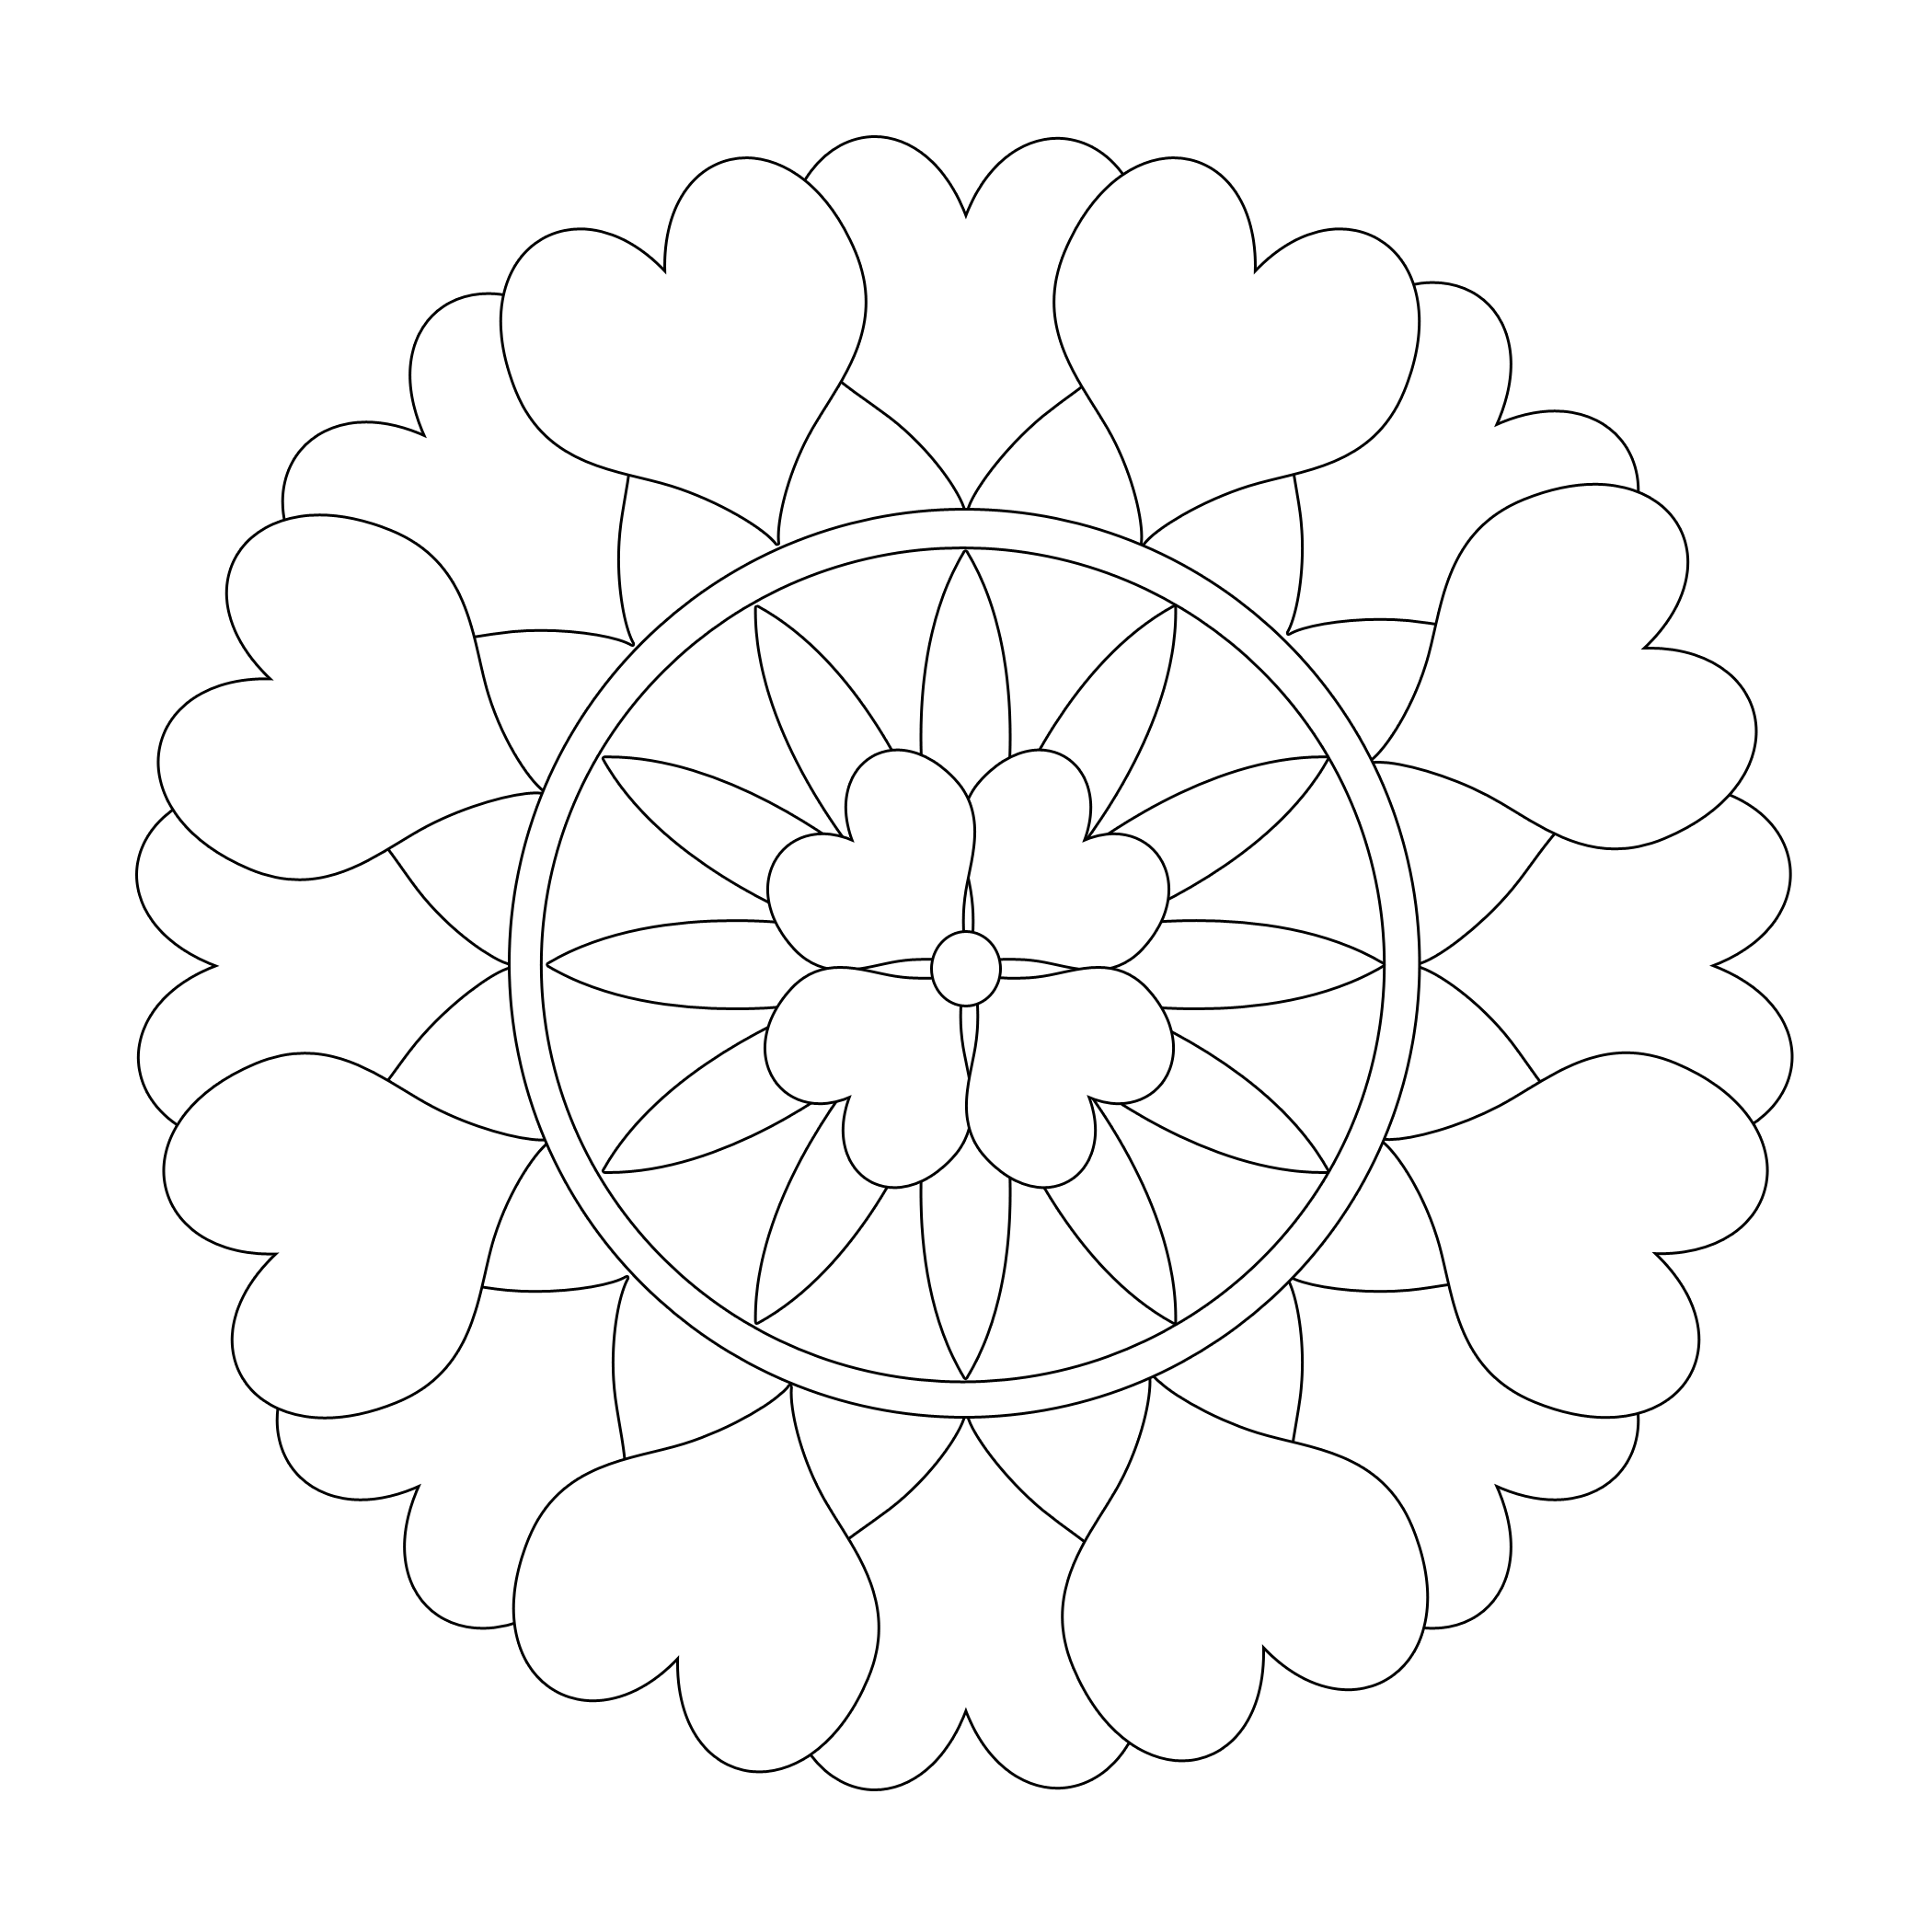 mandala coloring pages for adults free flower mandala coloring pages best coloring pages for kids free coloring mandala adults for pages